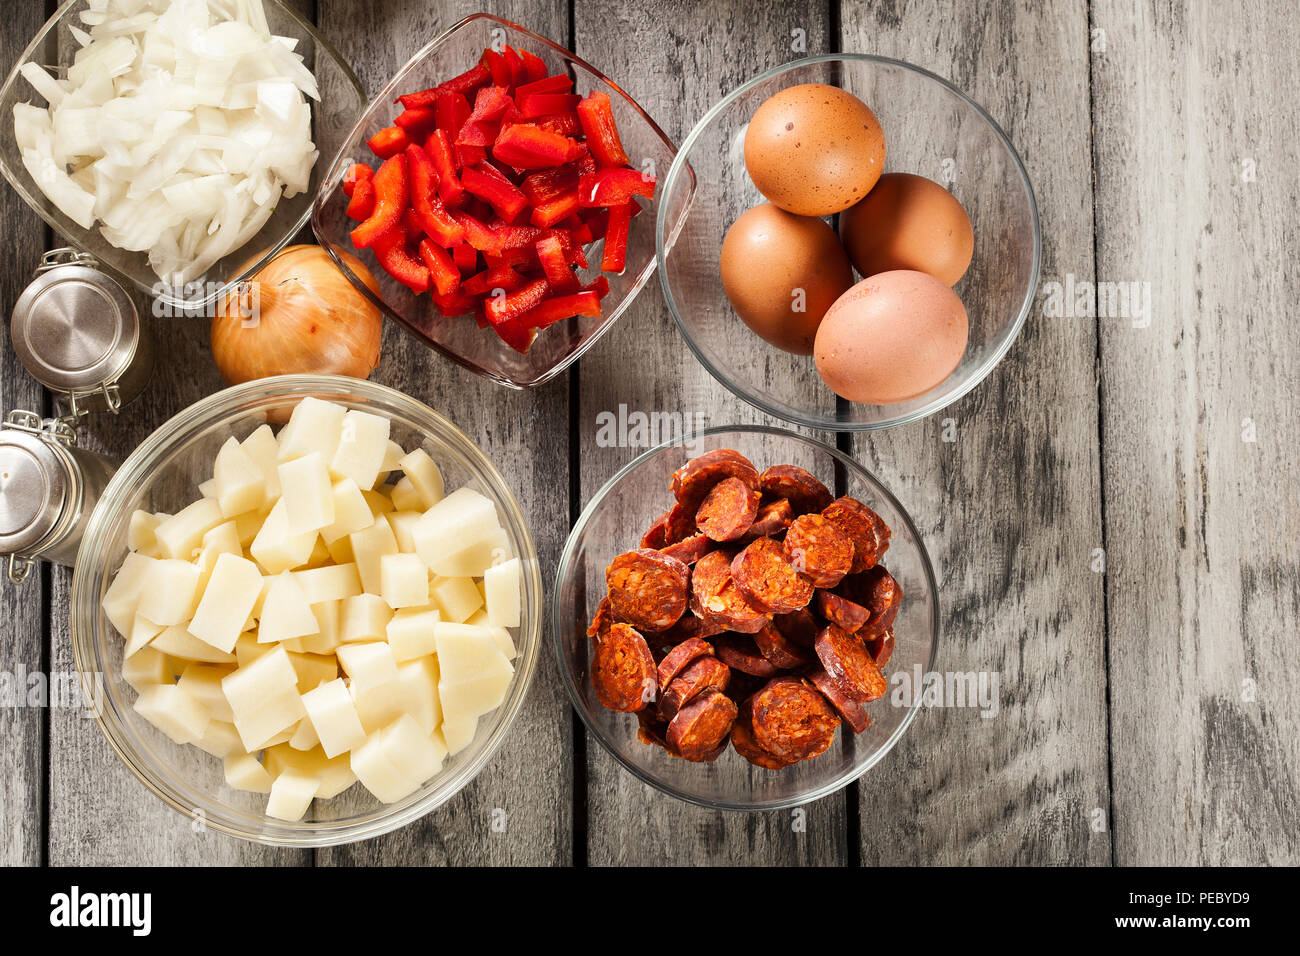 Tortilla de patatas. Ingredients for preparing spanish omelette with sausage chorizo, potatoes, paprika and egg. Spanish cuisine - Stock Image